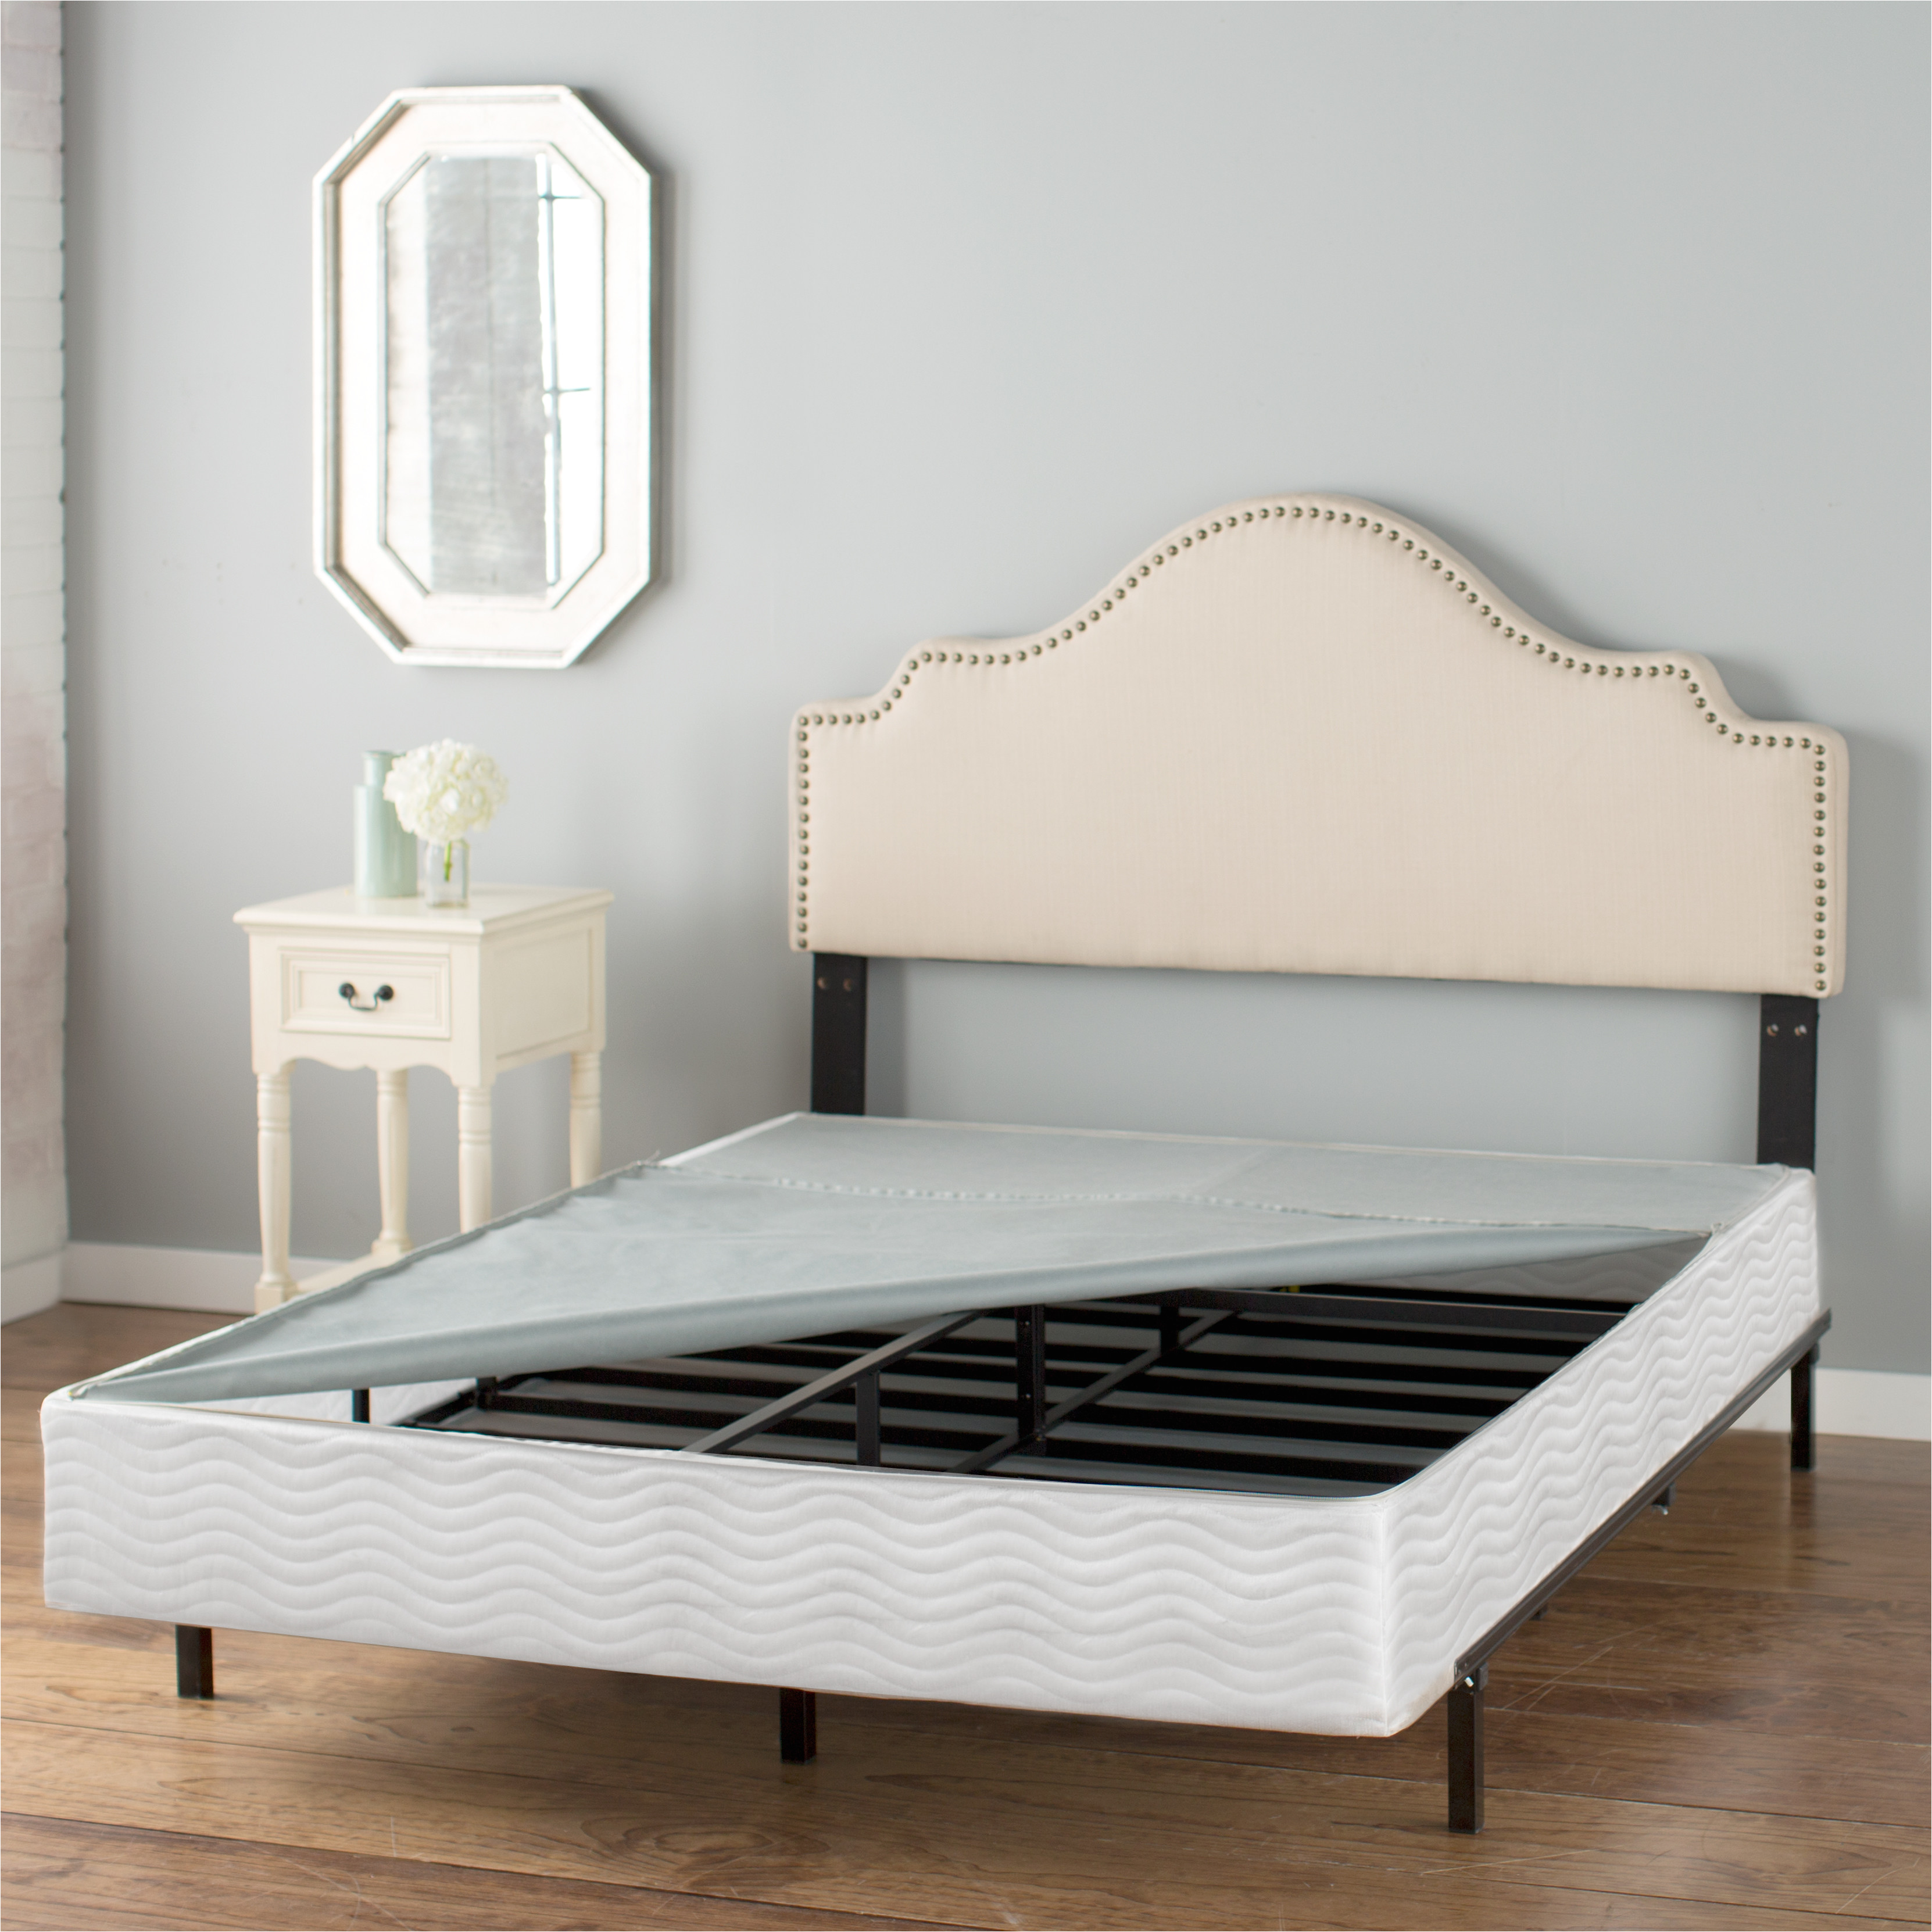 what are the dimensions of a queen size mattress sears matress queen mattress and